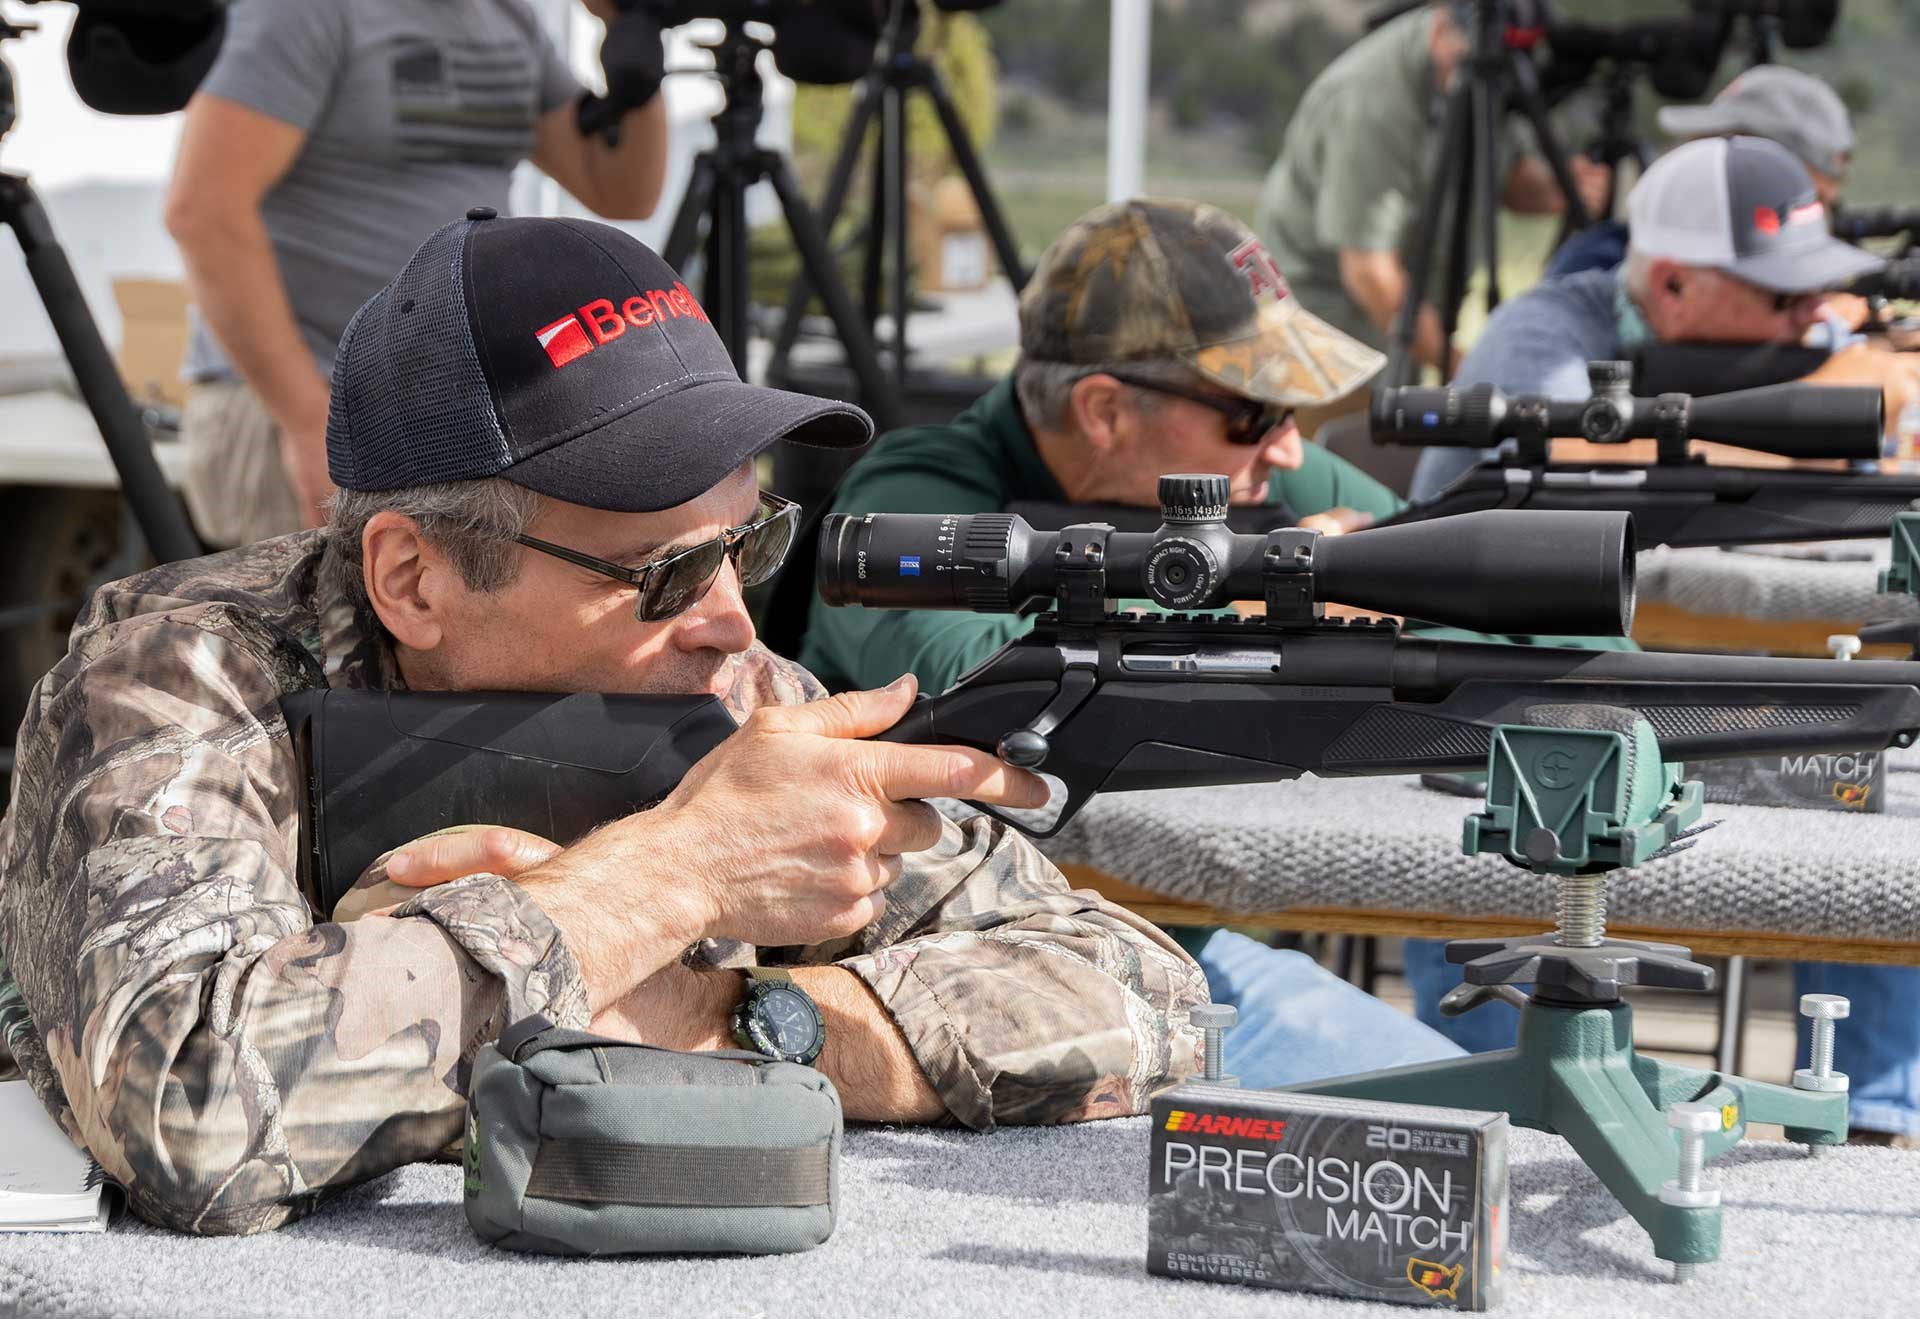 A group of shooters aim their rifles downrange from the bench on a known-distance target range.